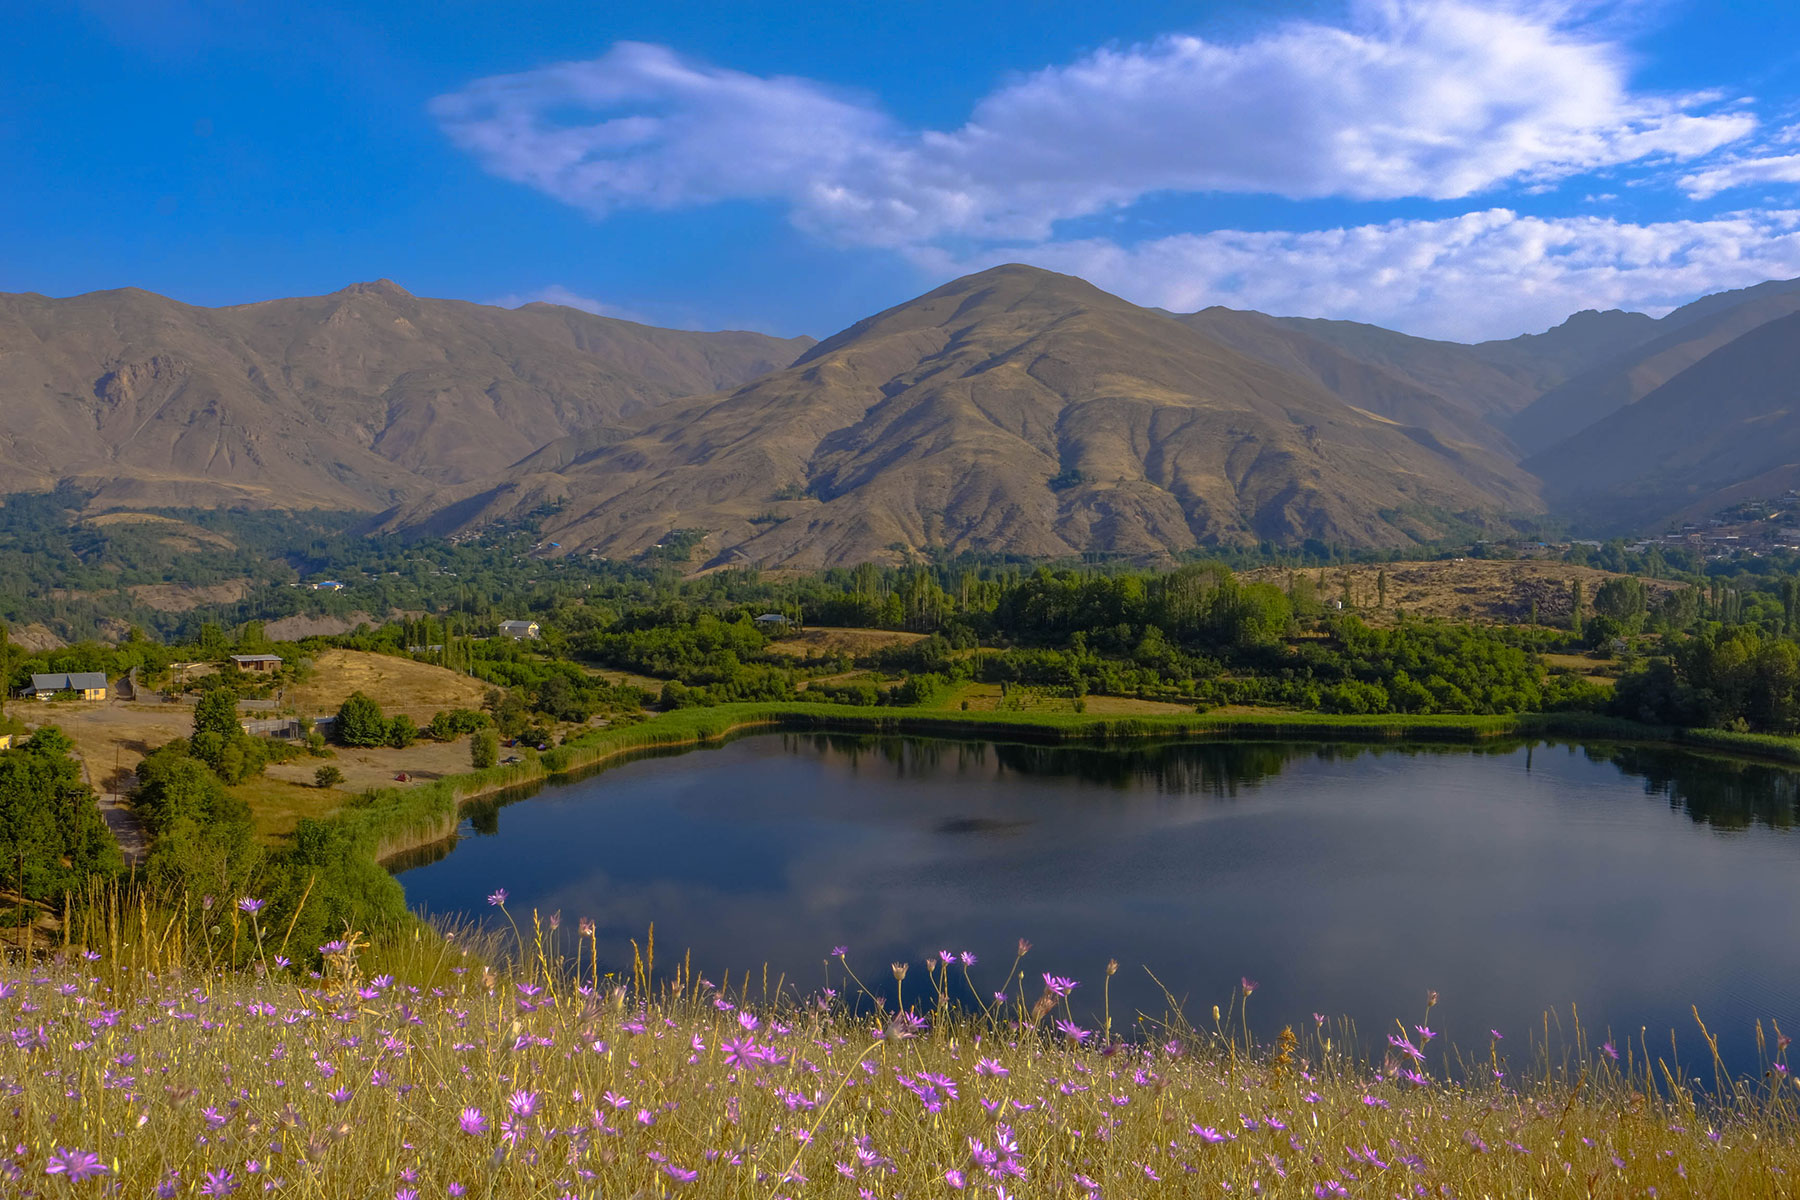 Alamut valley, Qazvin, offbeat places to visit in Iran